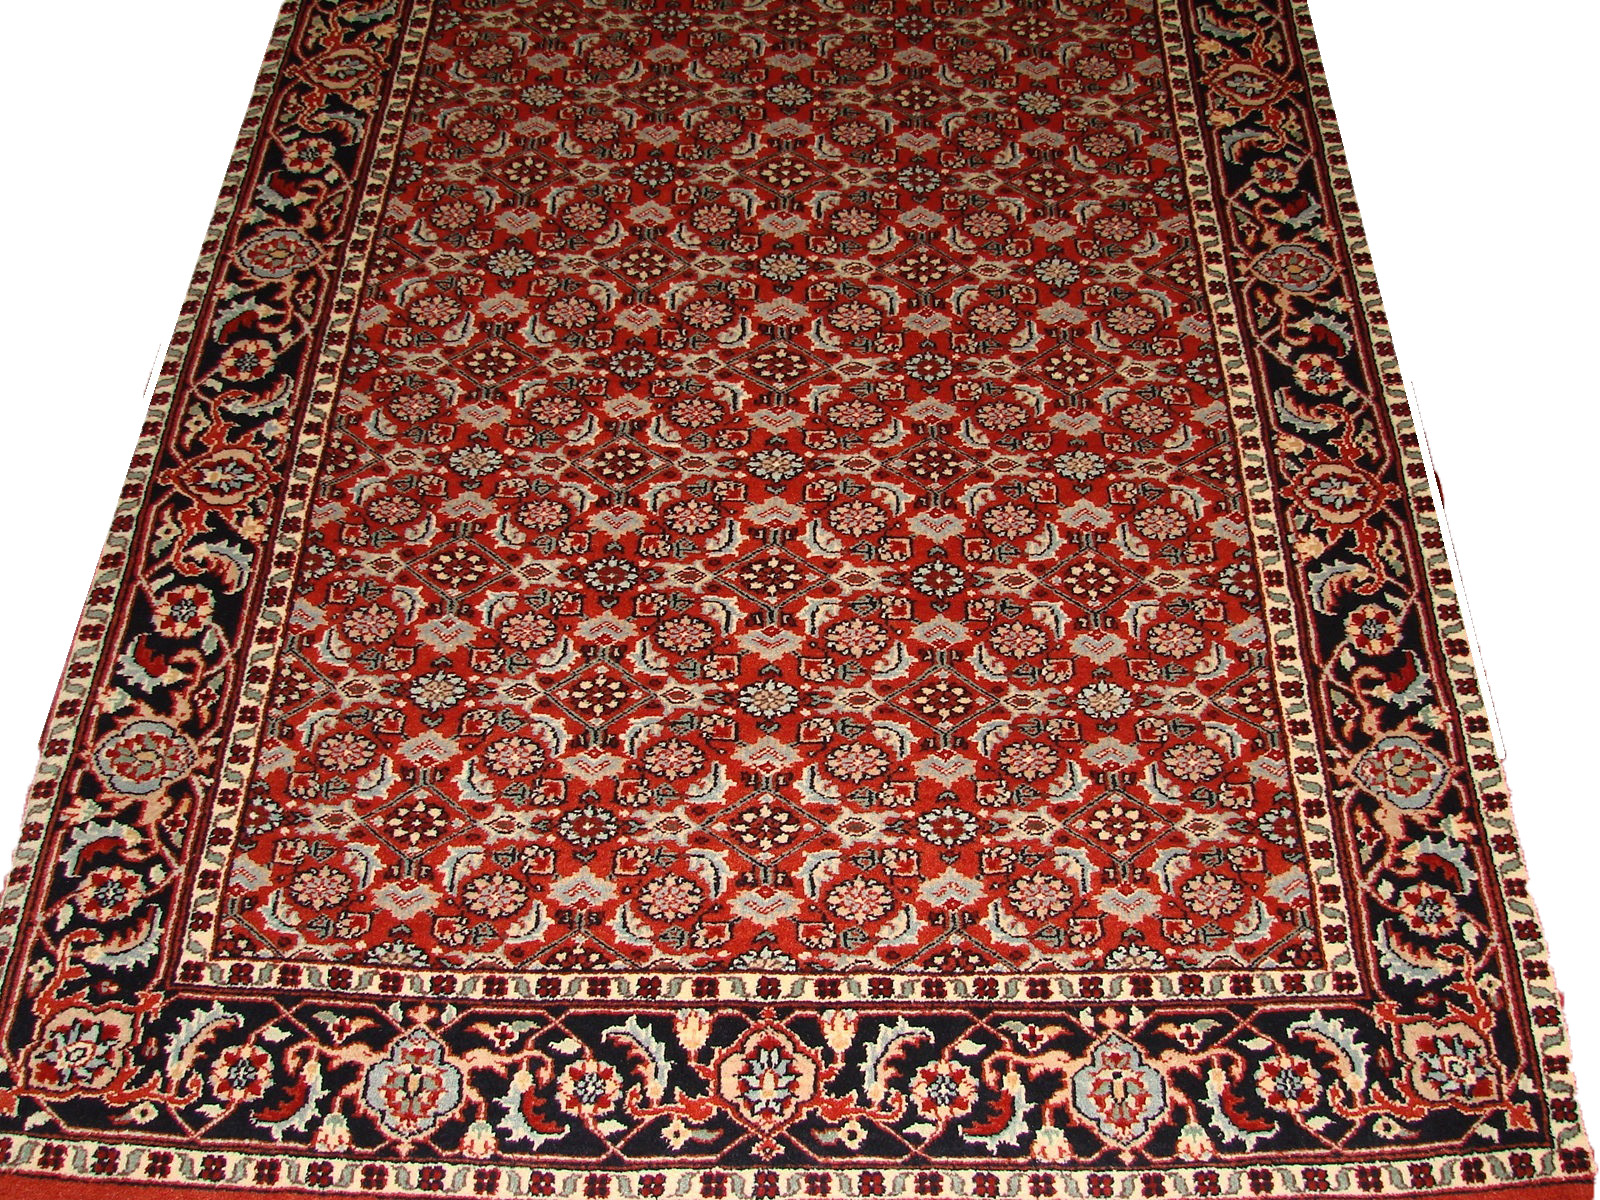 Clearance Rugs & Discontinued Rugs-HERATI-Oriental Designer Rugs